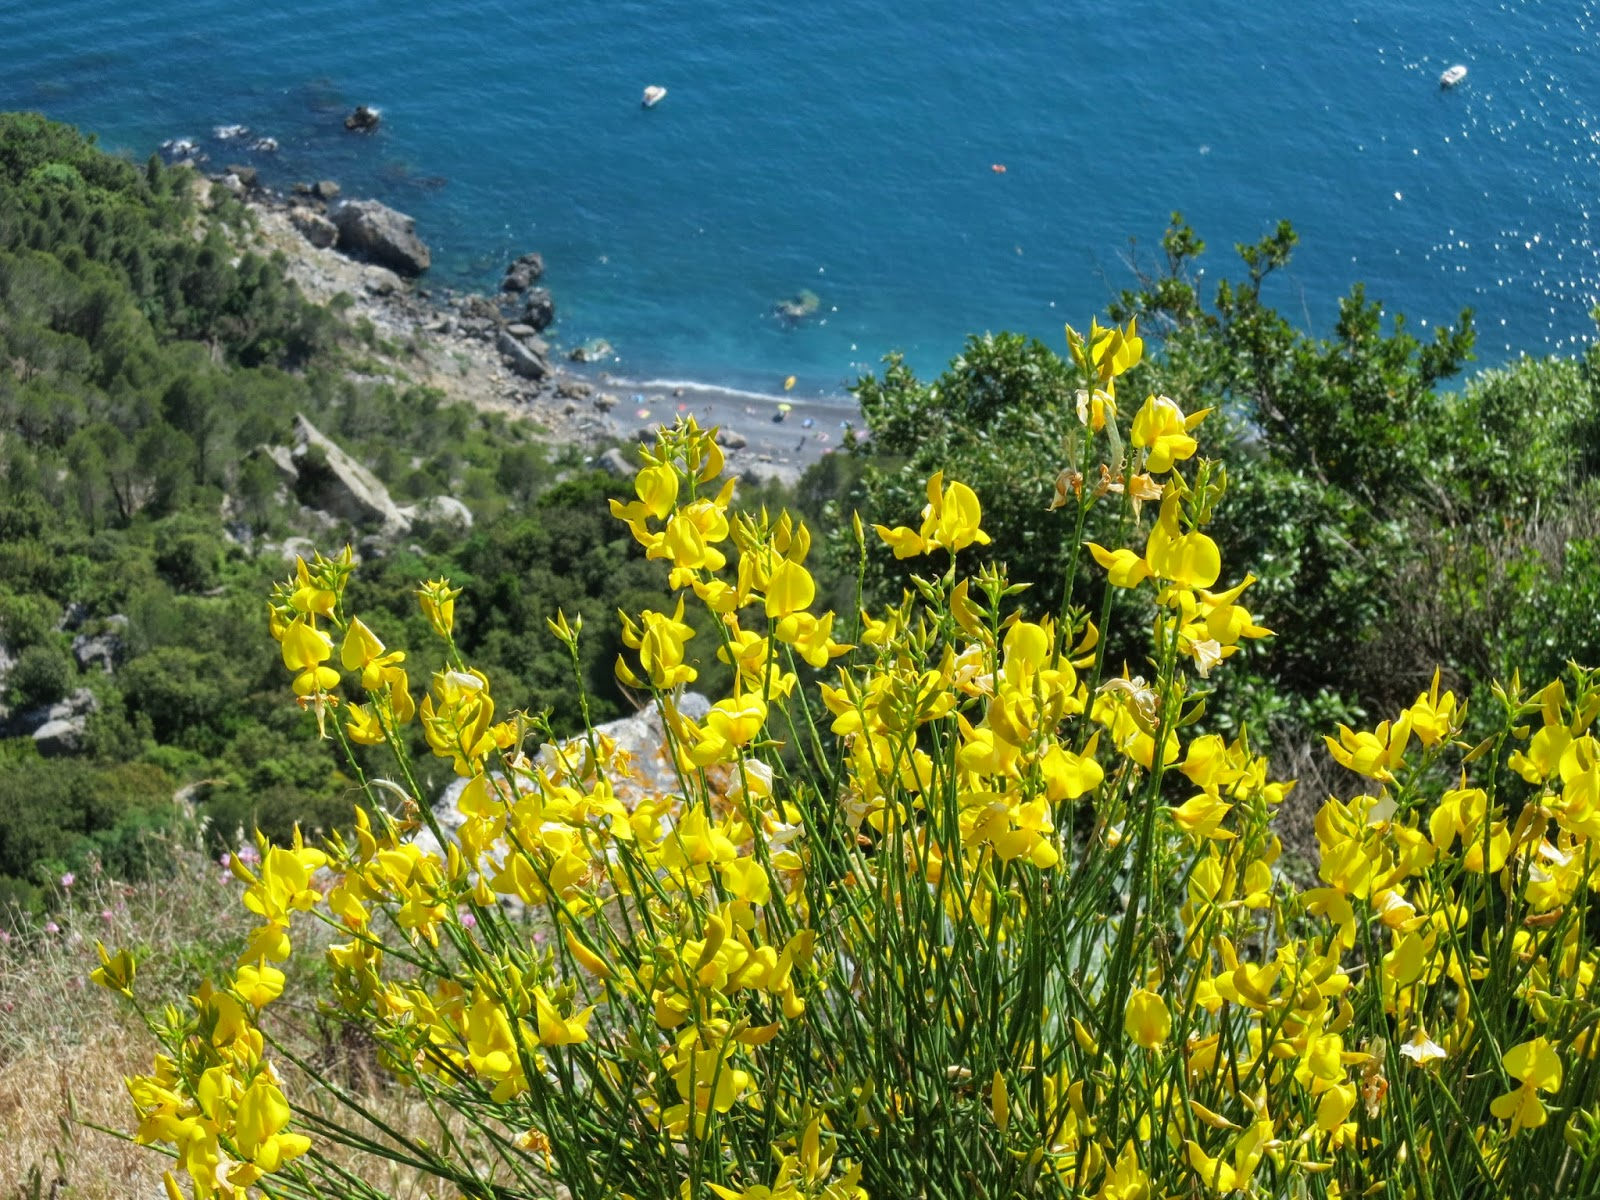 Ginestra flowers above Punta Corvo beach, Gulf of La Spezia